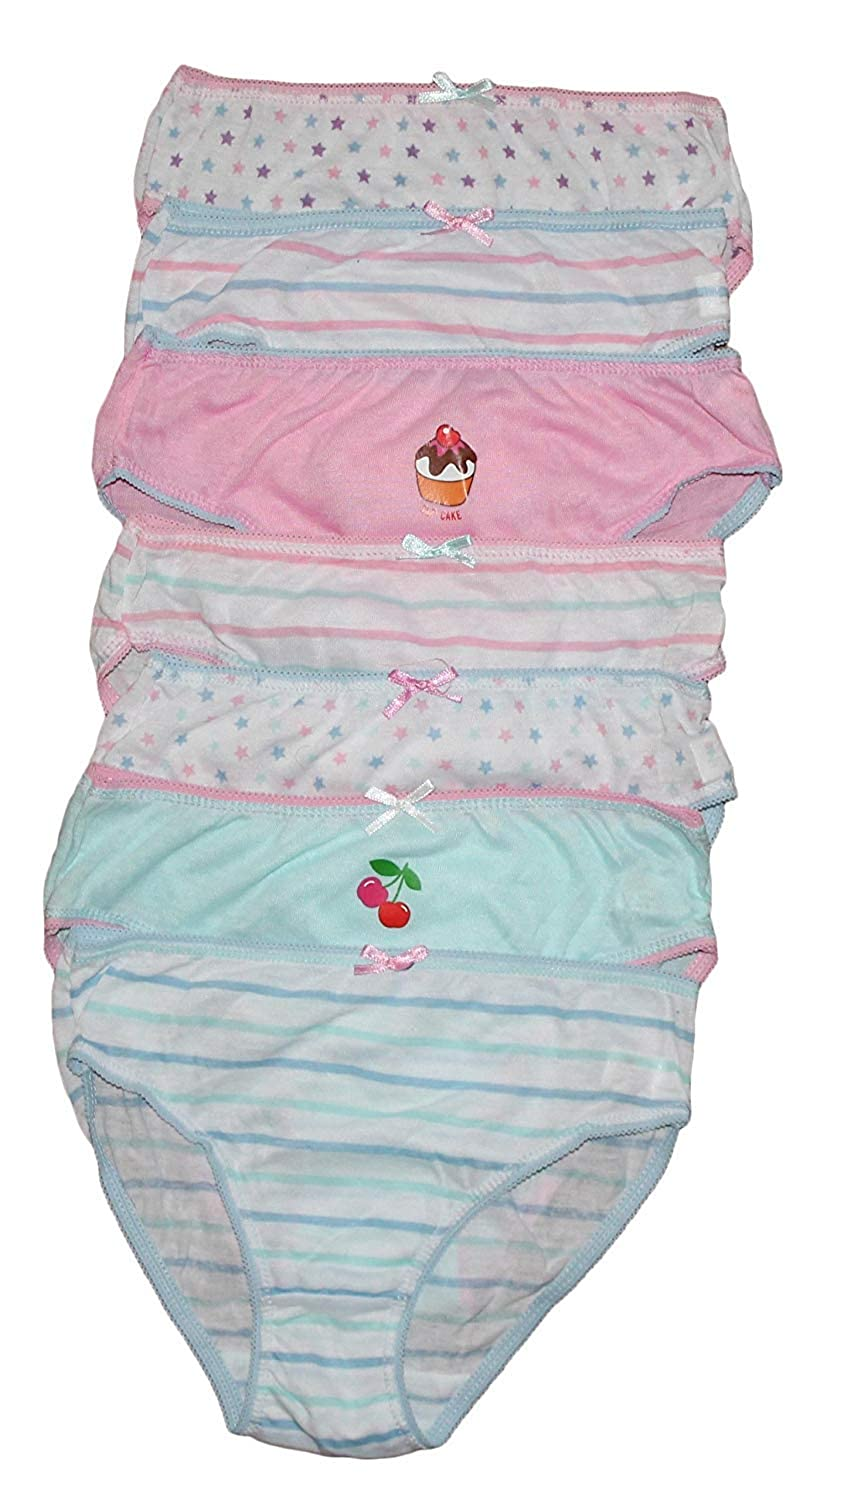 DVANIS Childrens 7 Pack Girls Knickers Briefs